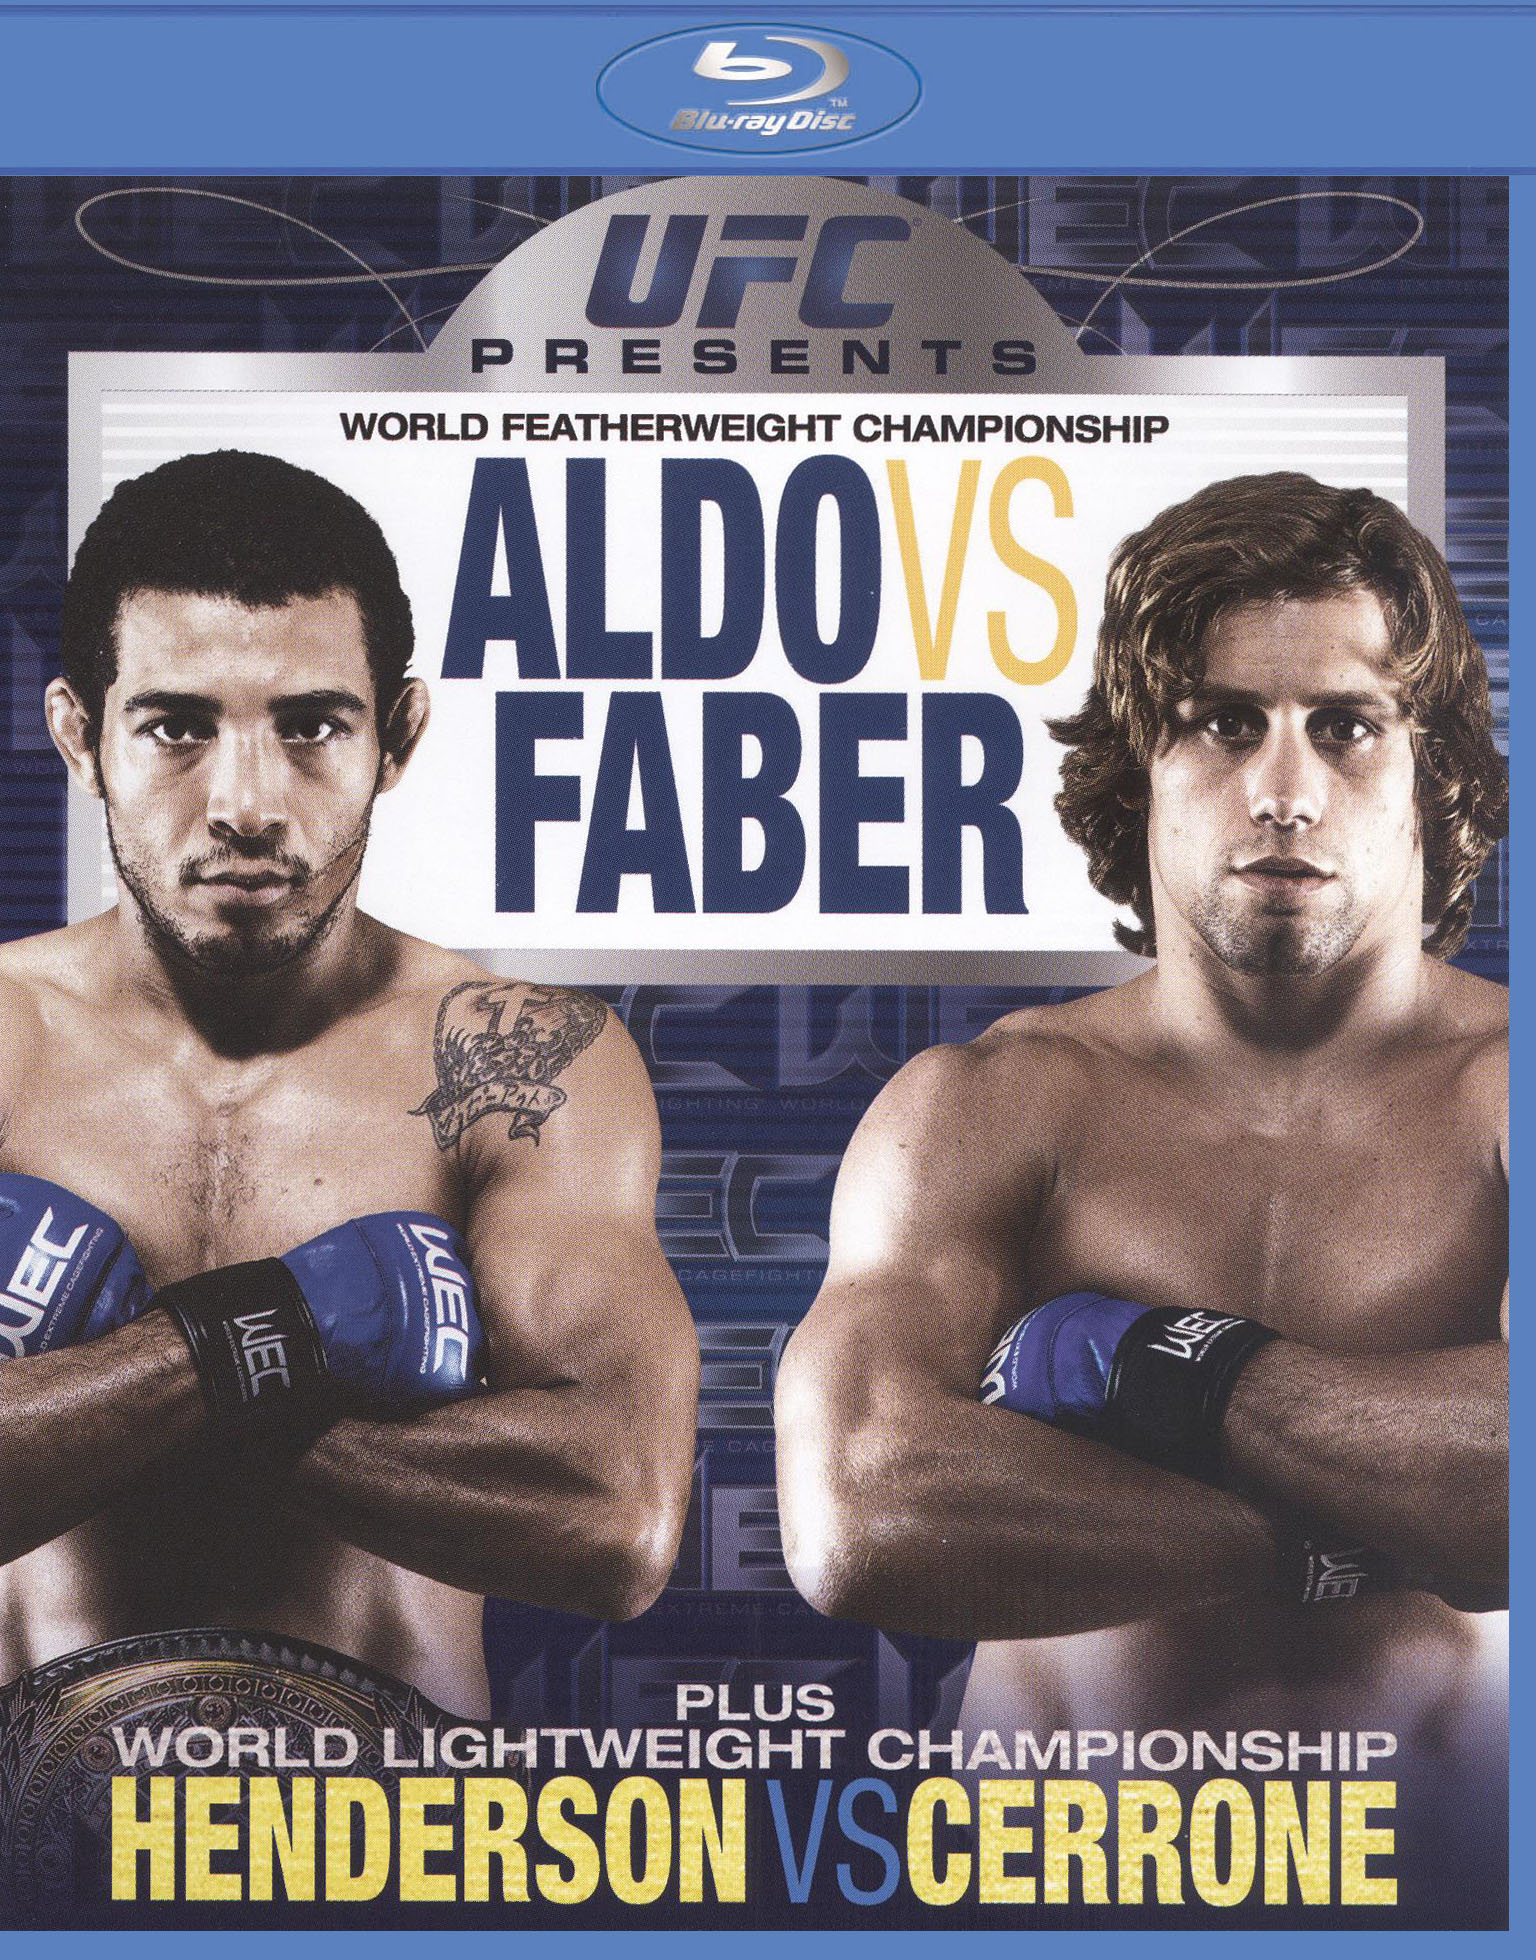 UFC Presents World Featherweight Championship: Aldo vs. Faber